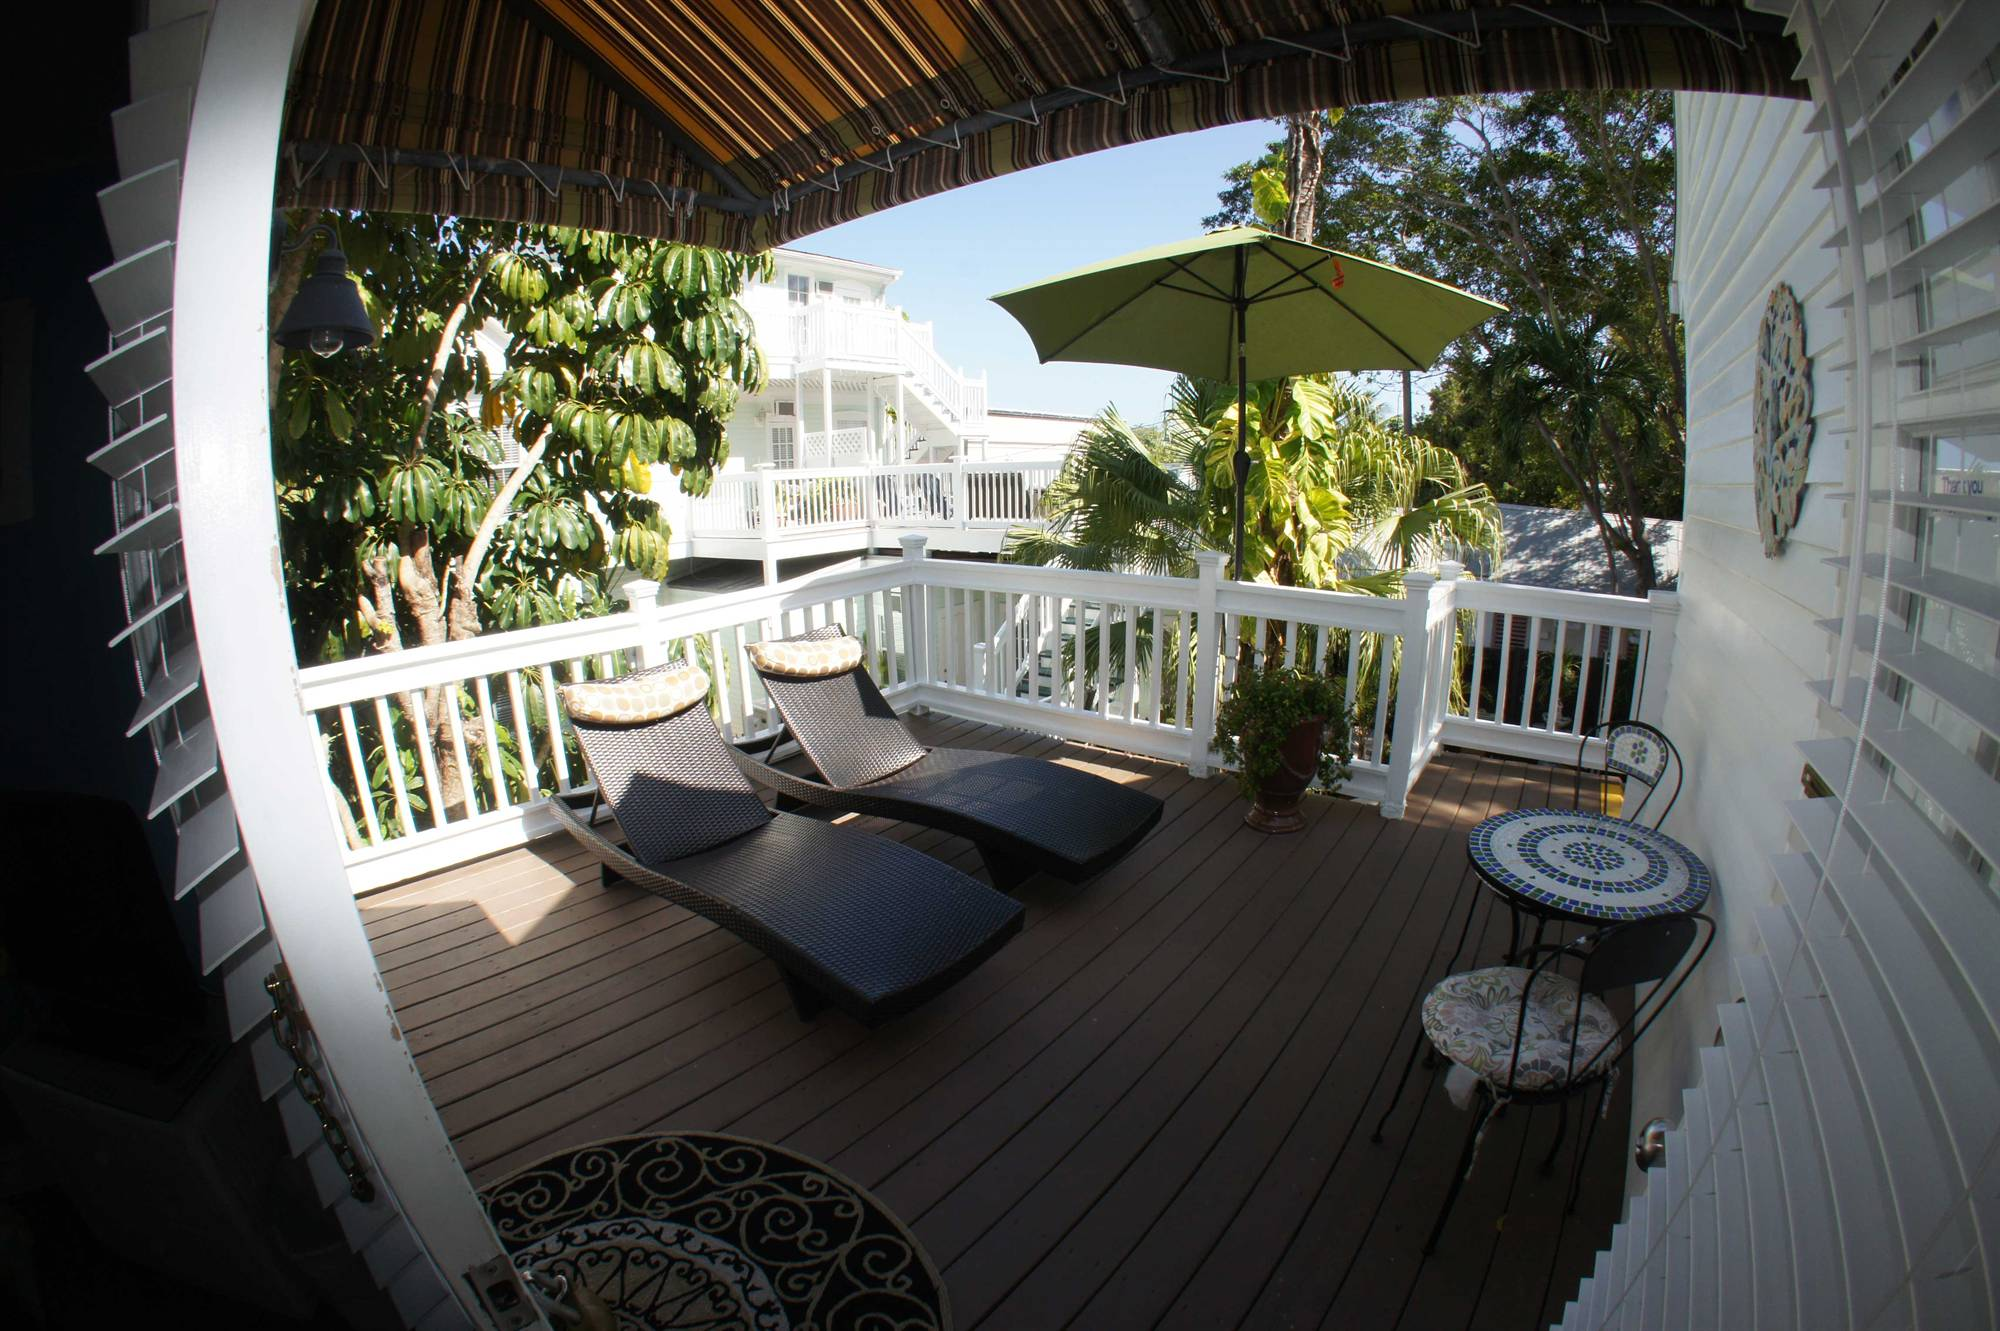 Our Key West Deluxe Queen Room with Patio